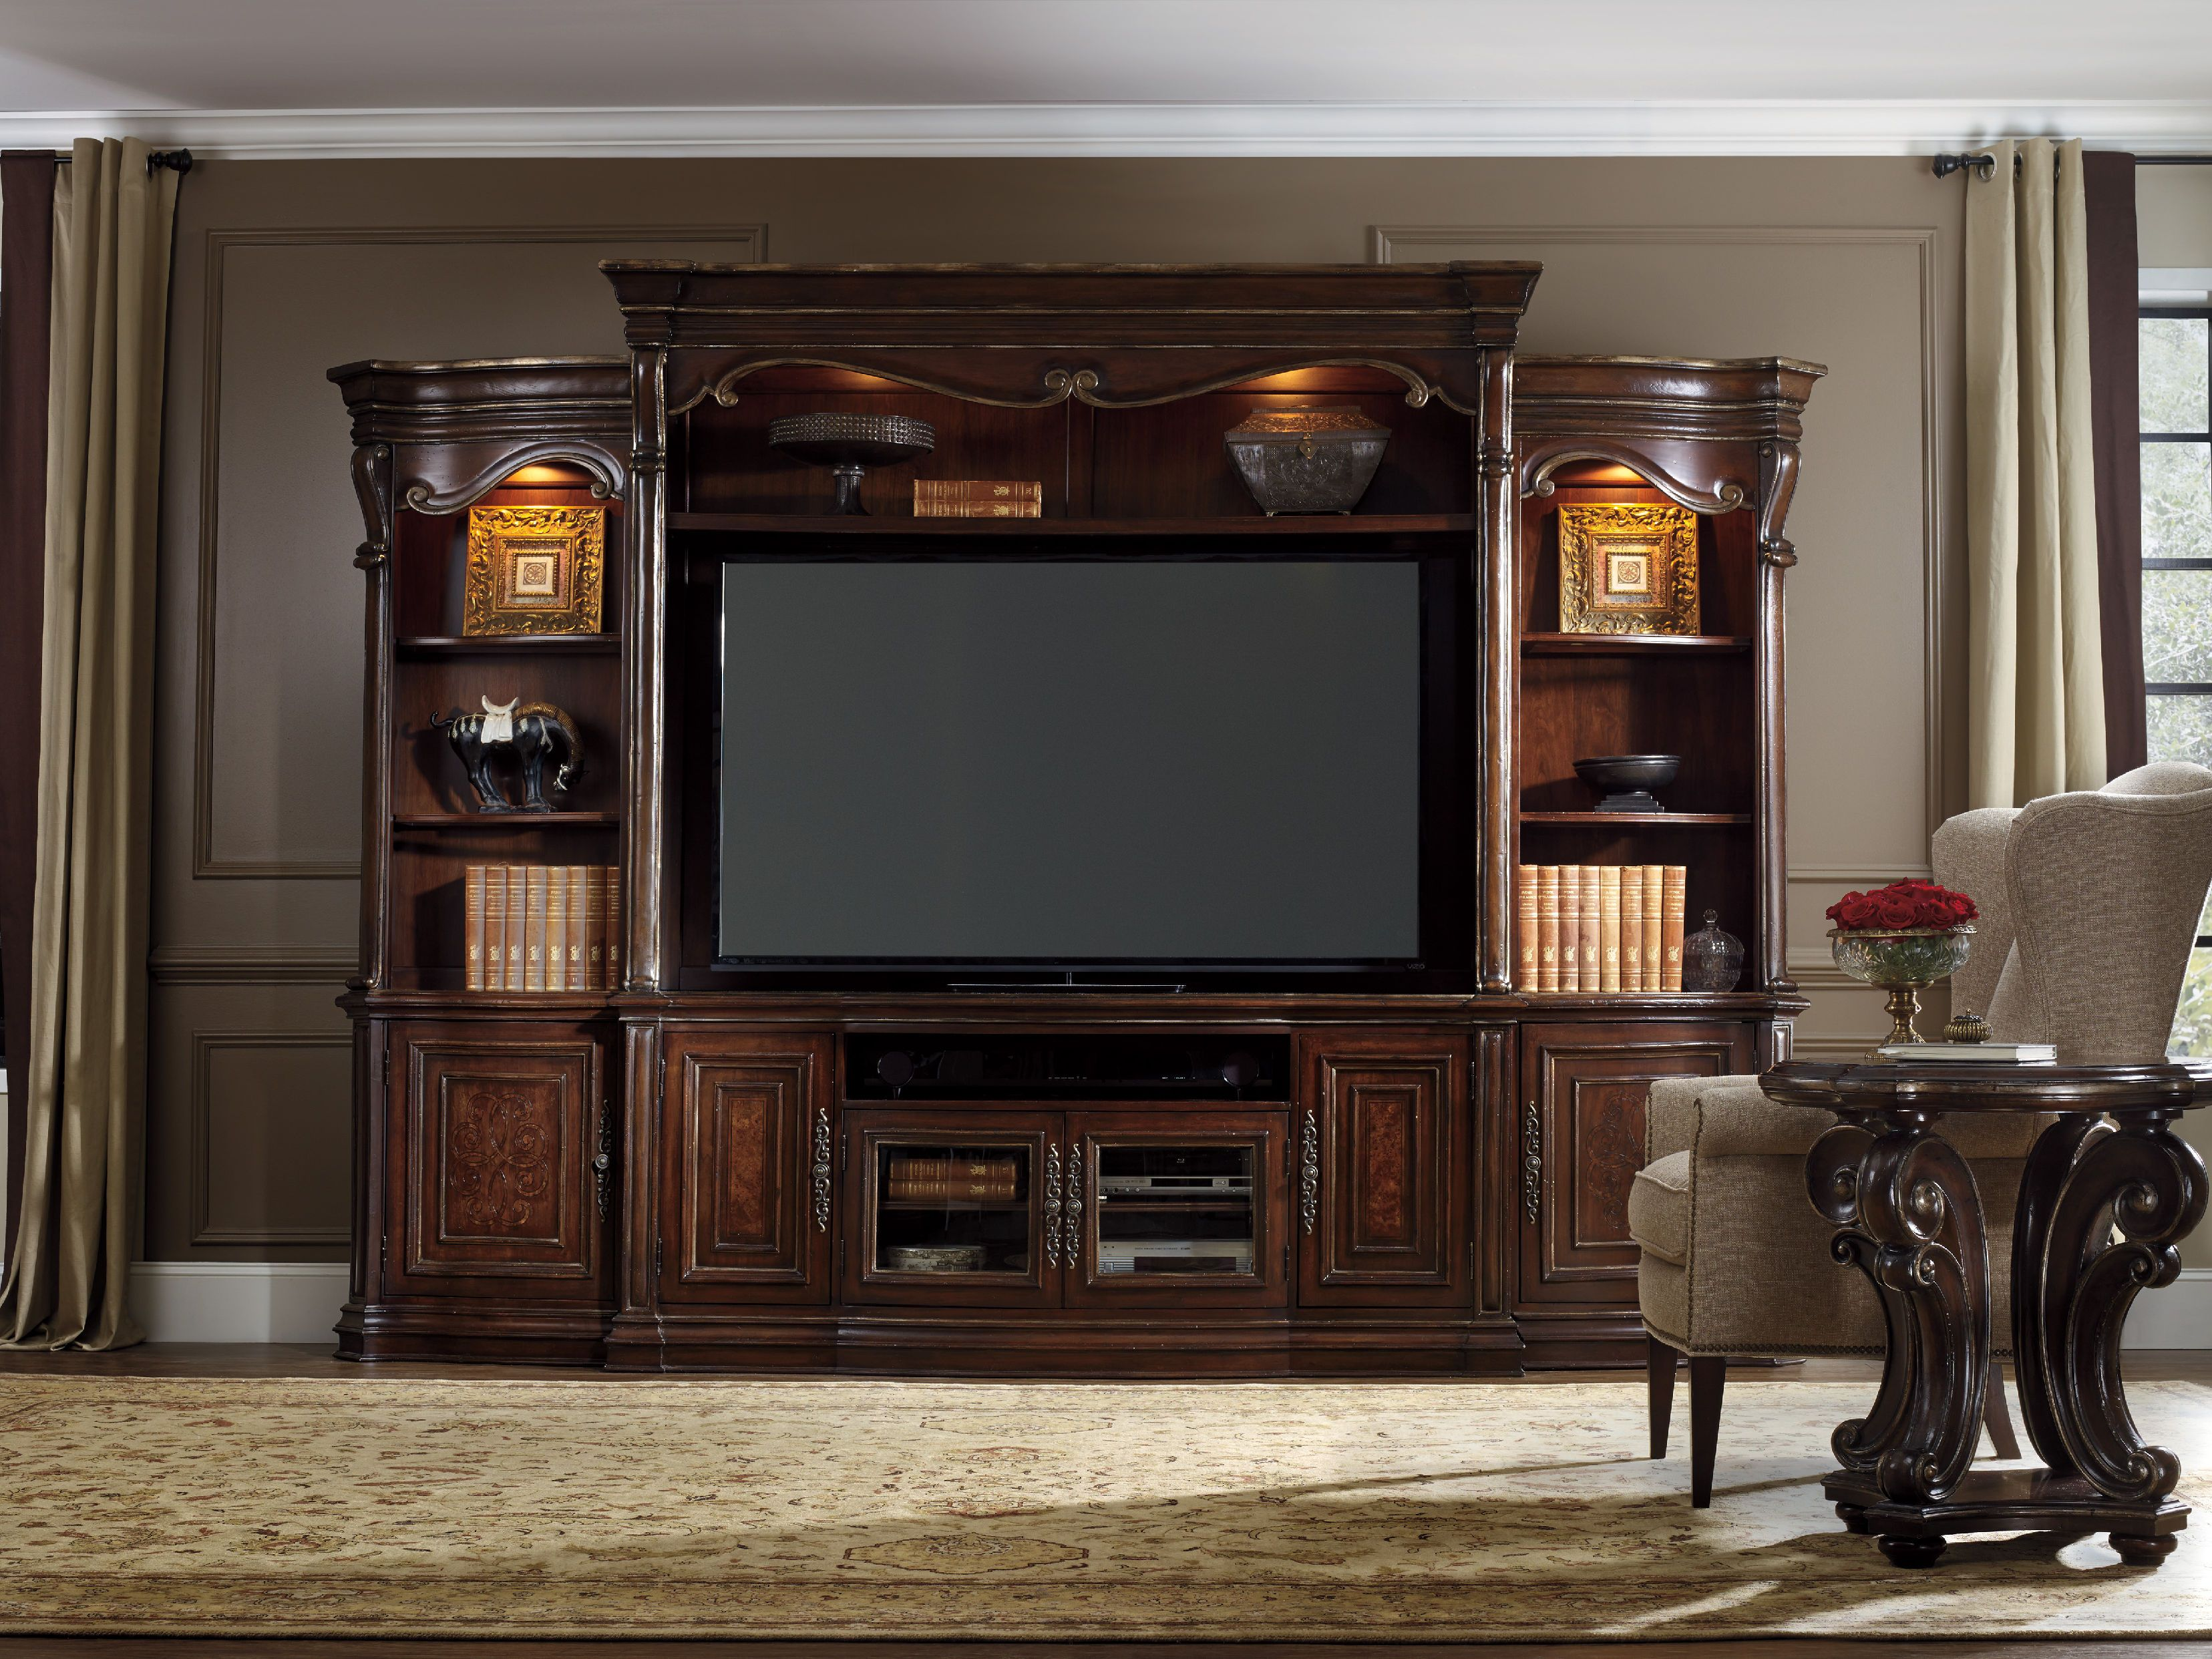 Wall Media Cabinet 68 Best Images About Media Cabinet On Pinterest Hooker Furniture